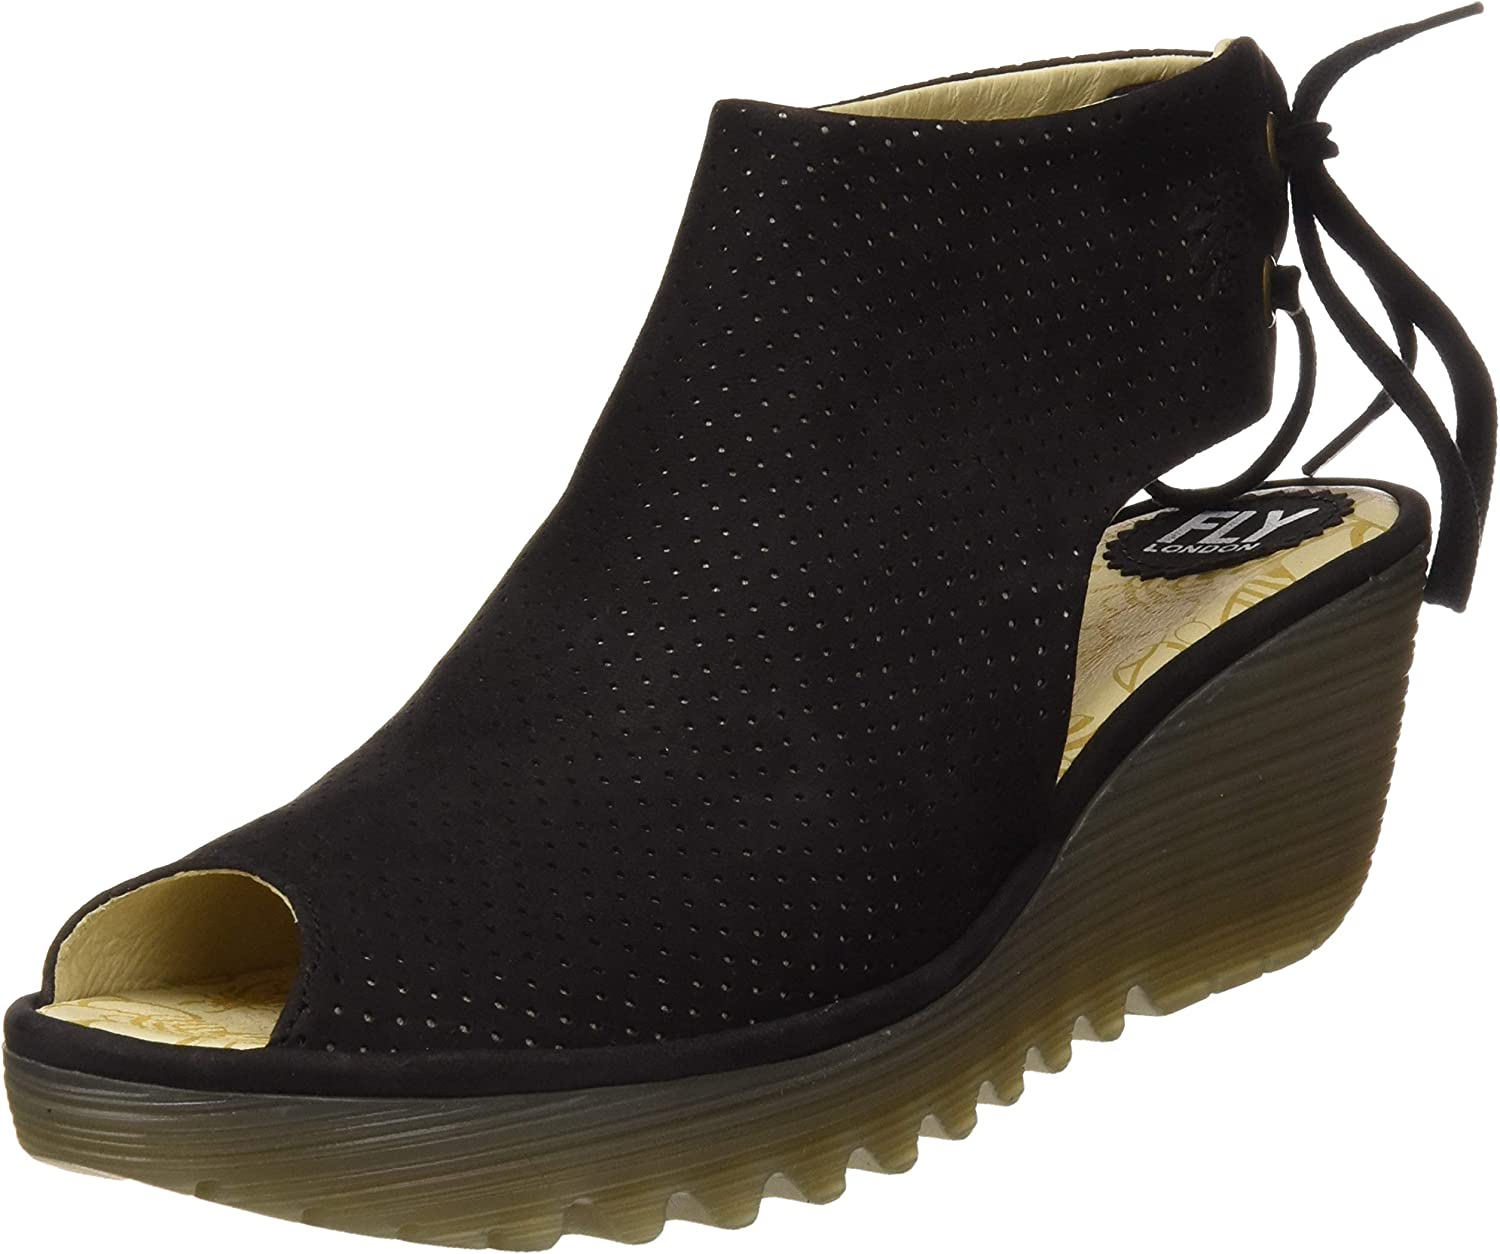 Fly London Women's Ypul799 Peep Toe Lace Up Ankle Boot